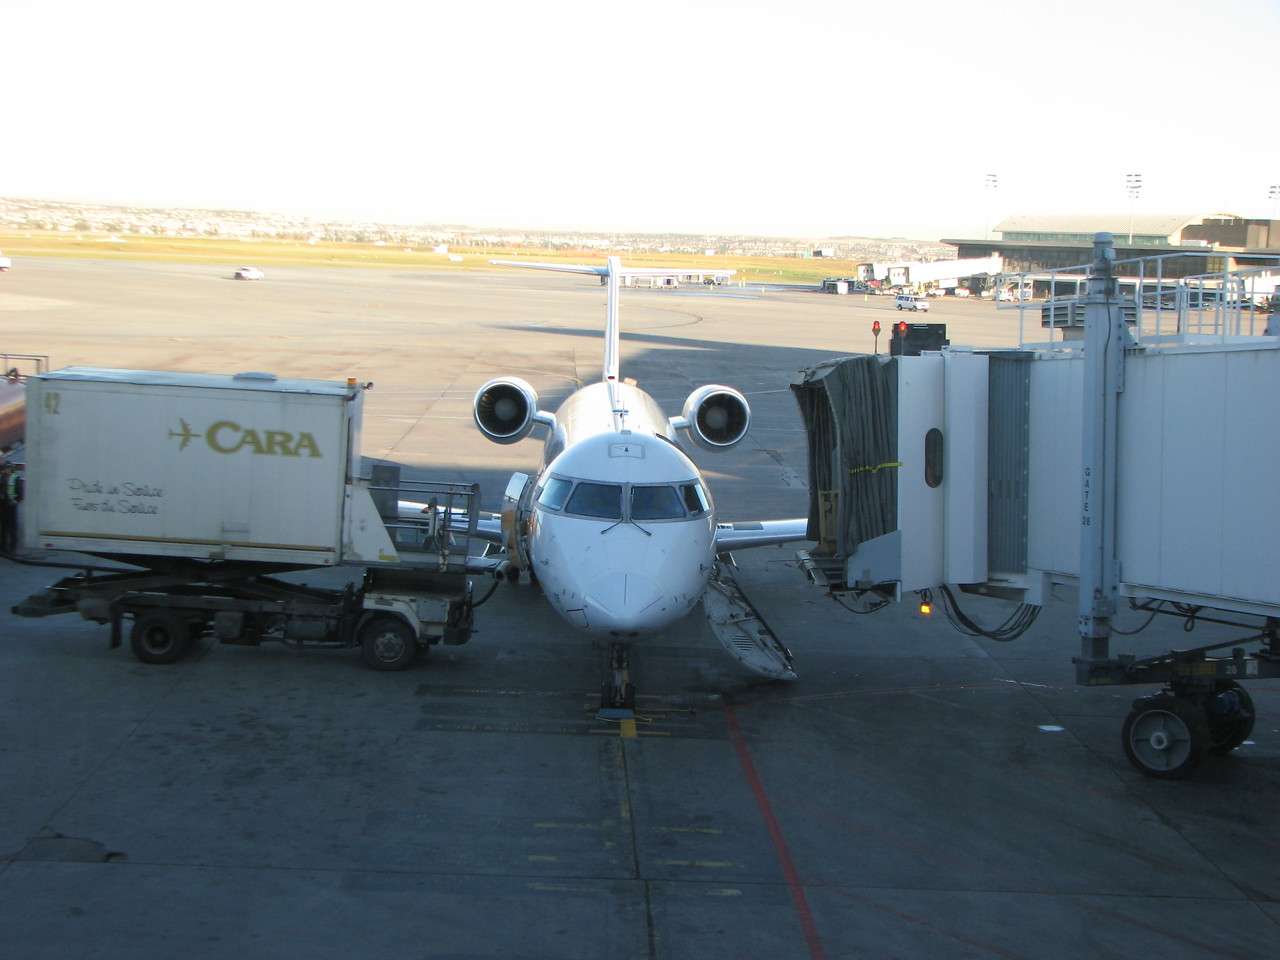 This is our small Air Canada plane bound for Seattle.